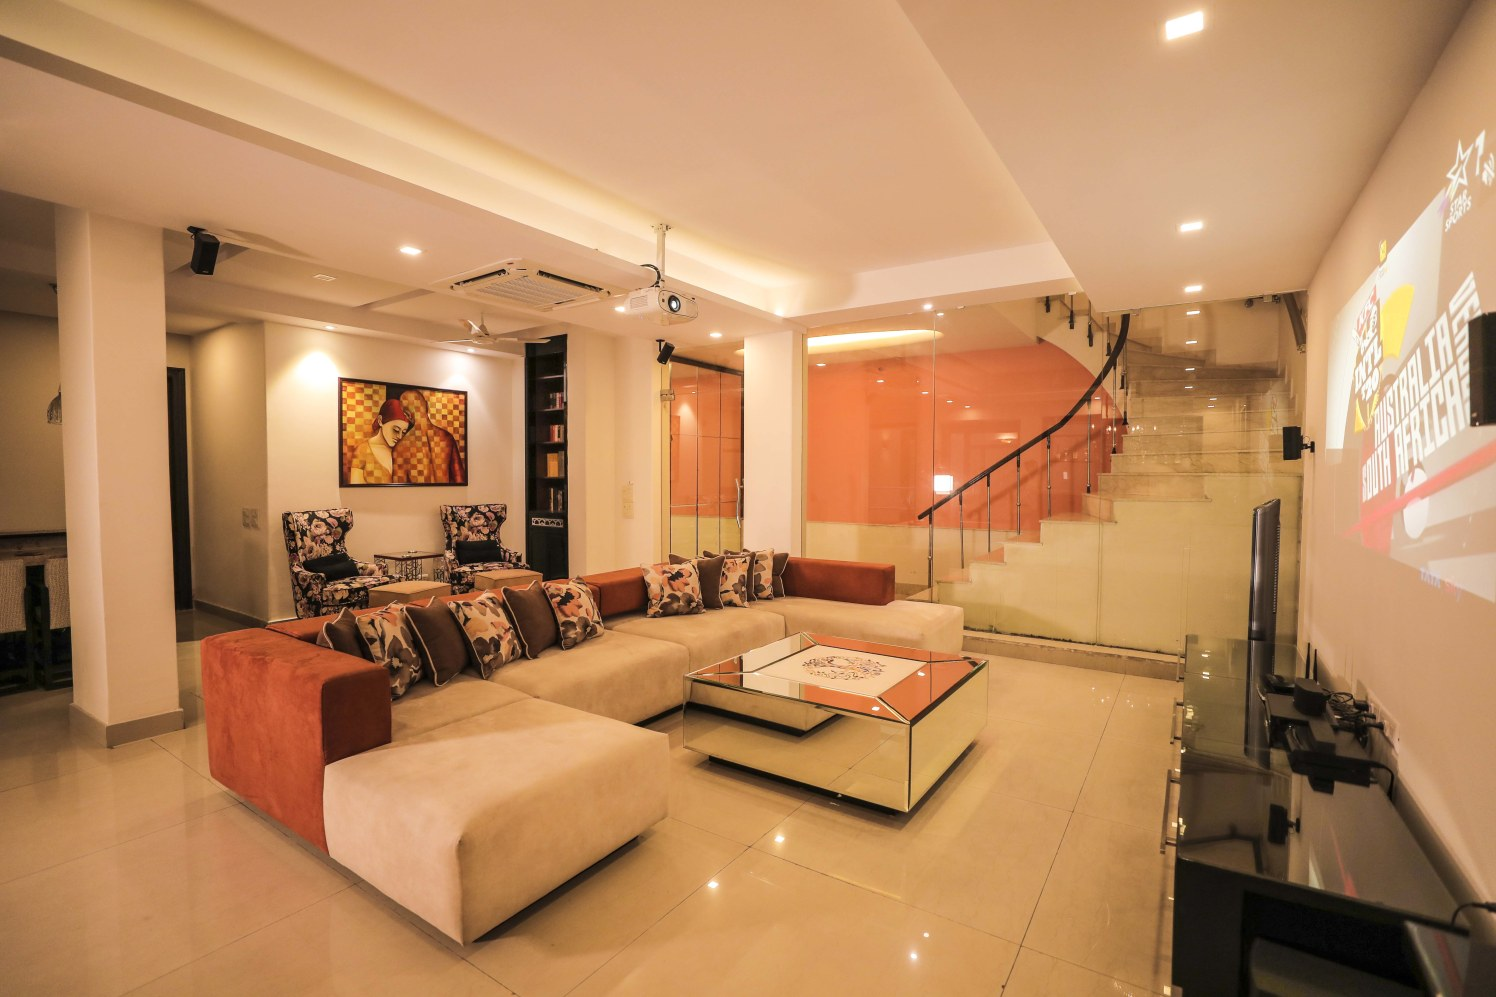 Orange themed living room decor by Bhoomi Ink Architects Living-room Modern | Interior Design Photos & Ideas